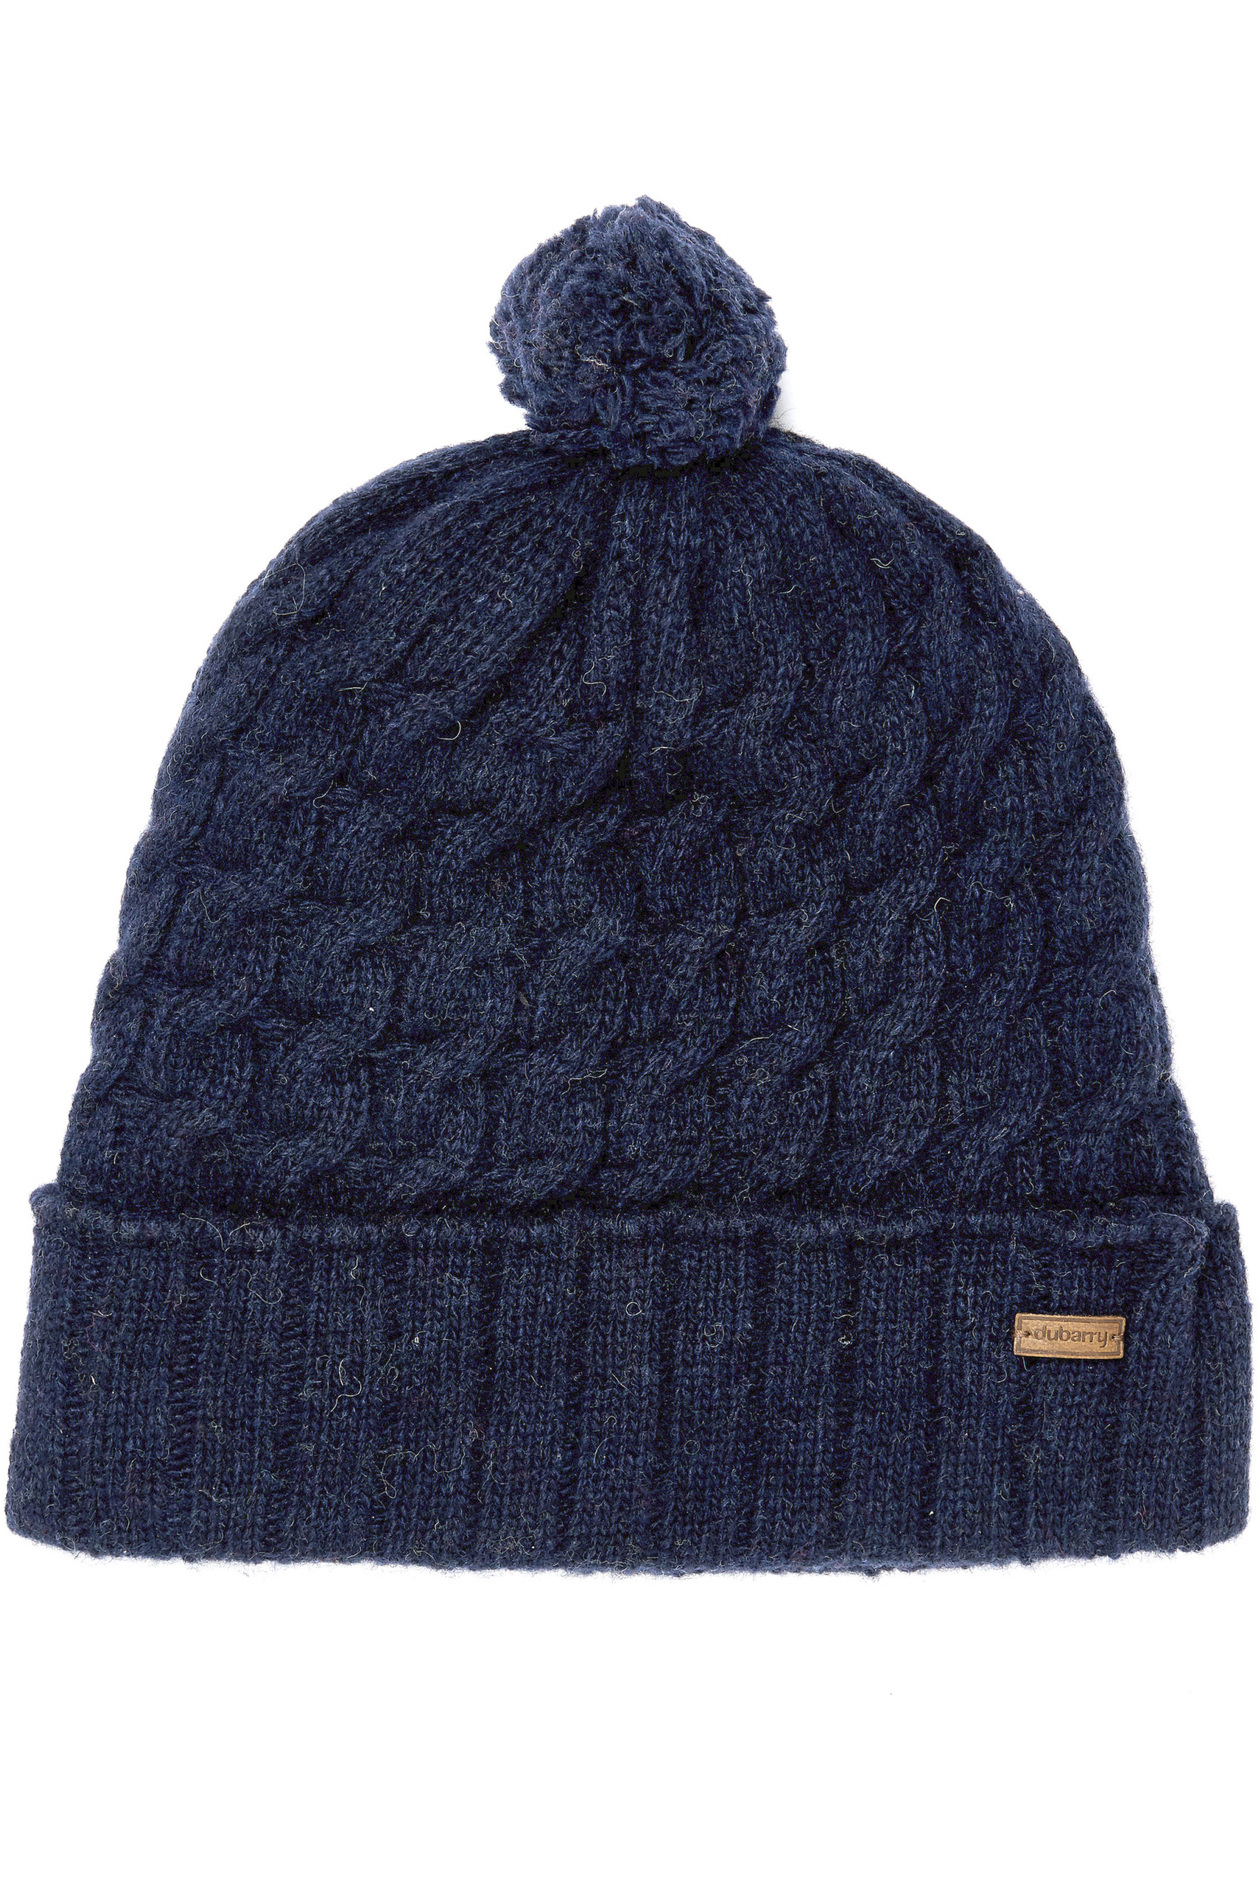 f68a5b357ce ... promo code for dubarry athboy knited bobble hat navy 94c55 4db2d